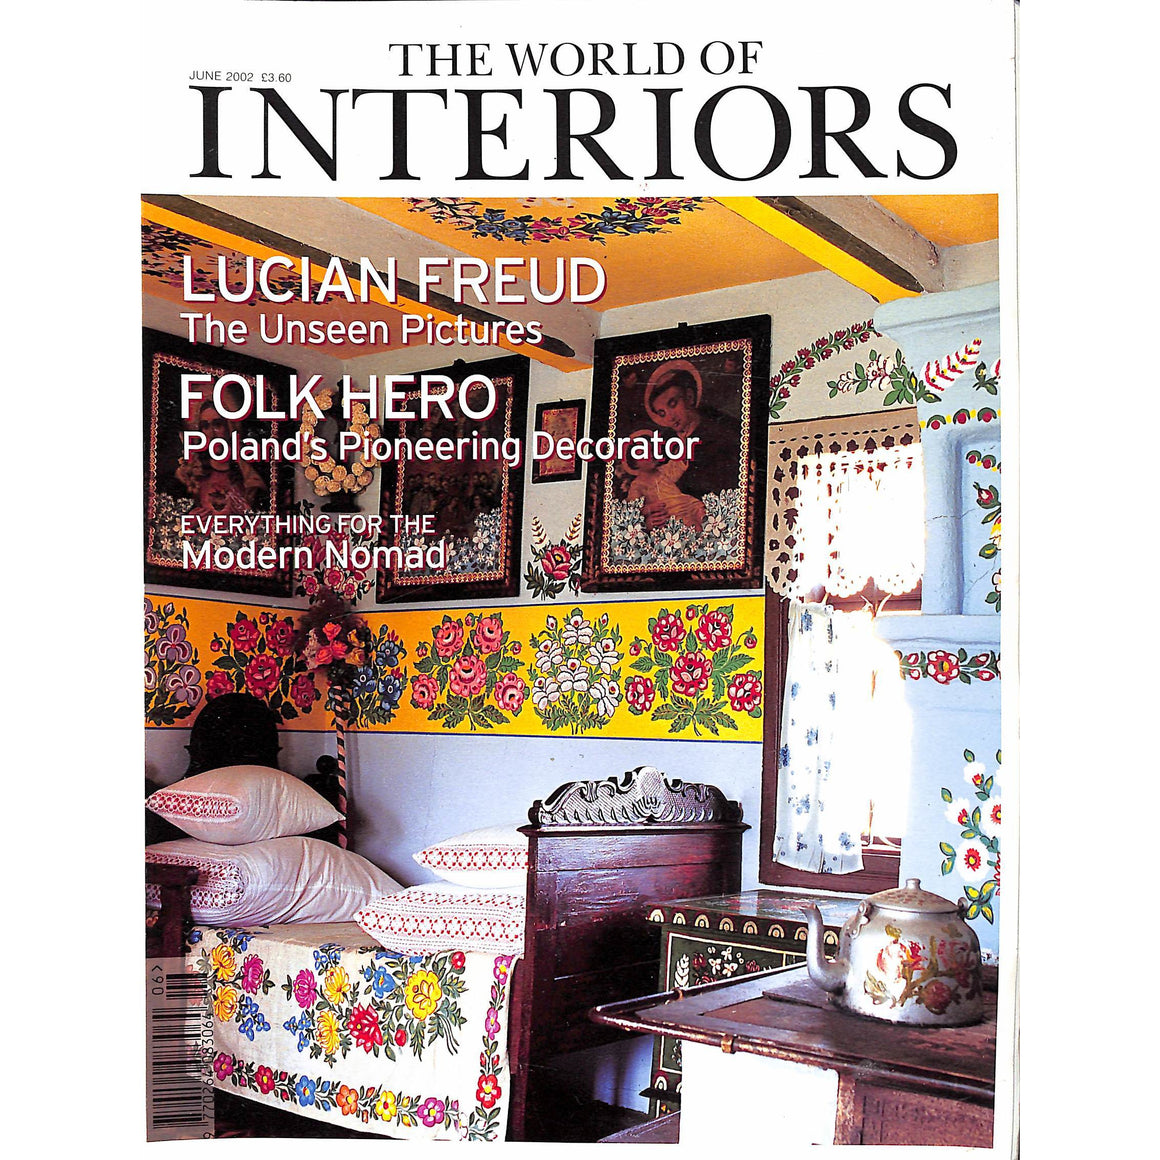 The World of Interiors June 2002